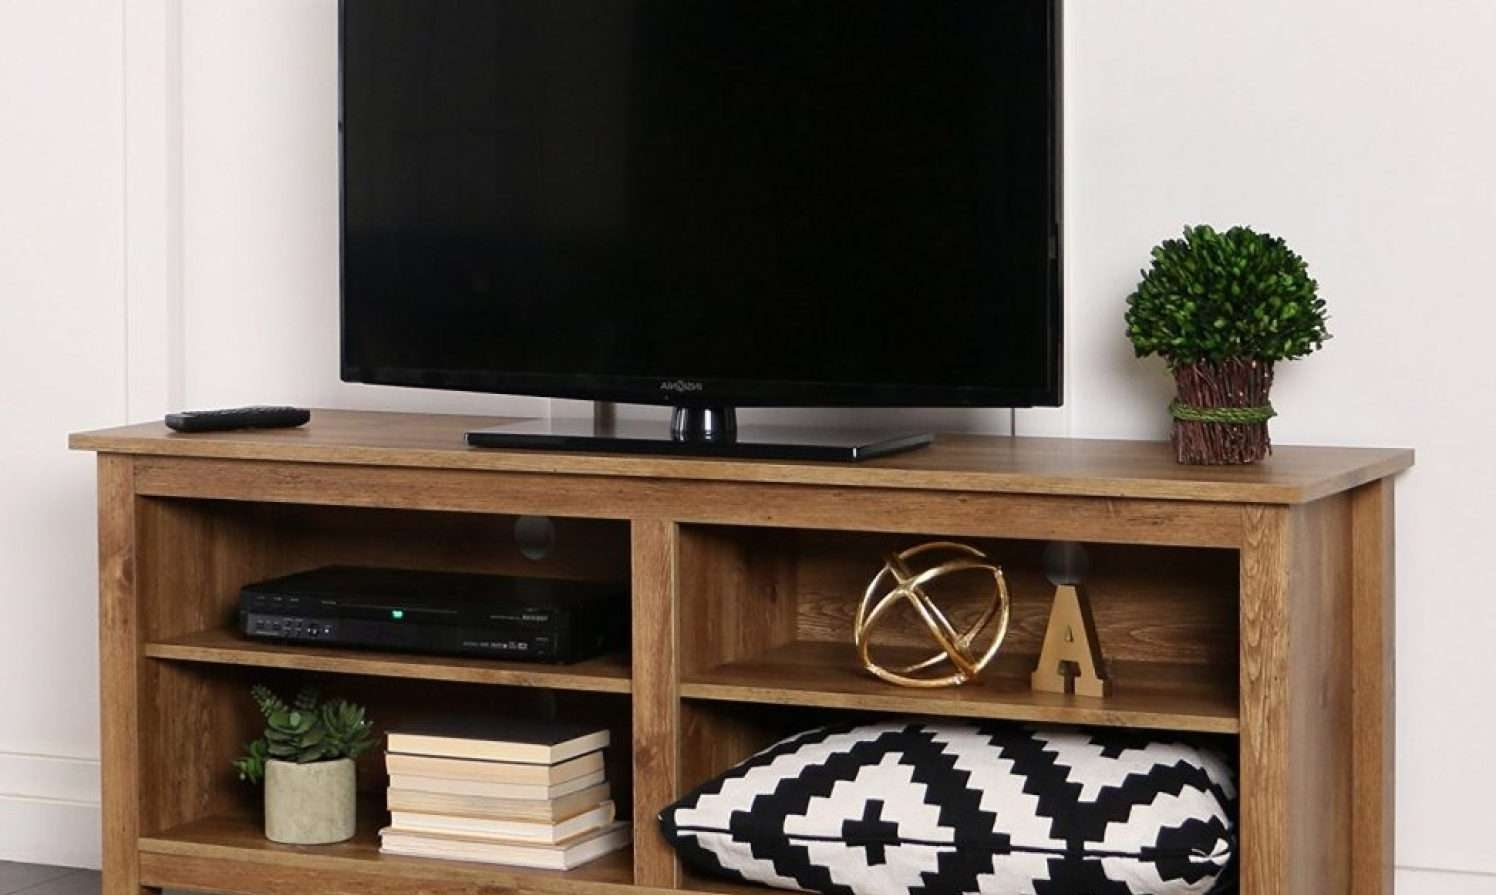 Tv : Wonderful Easel Tv Stands For Flat Screens Inspireda With Easel Tv Stands For Flat Screens (View 12 of 15)